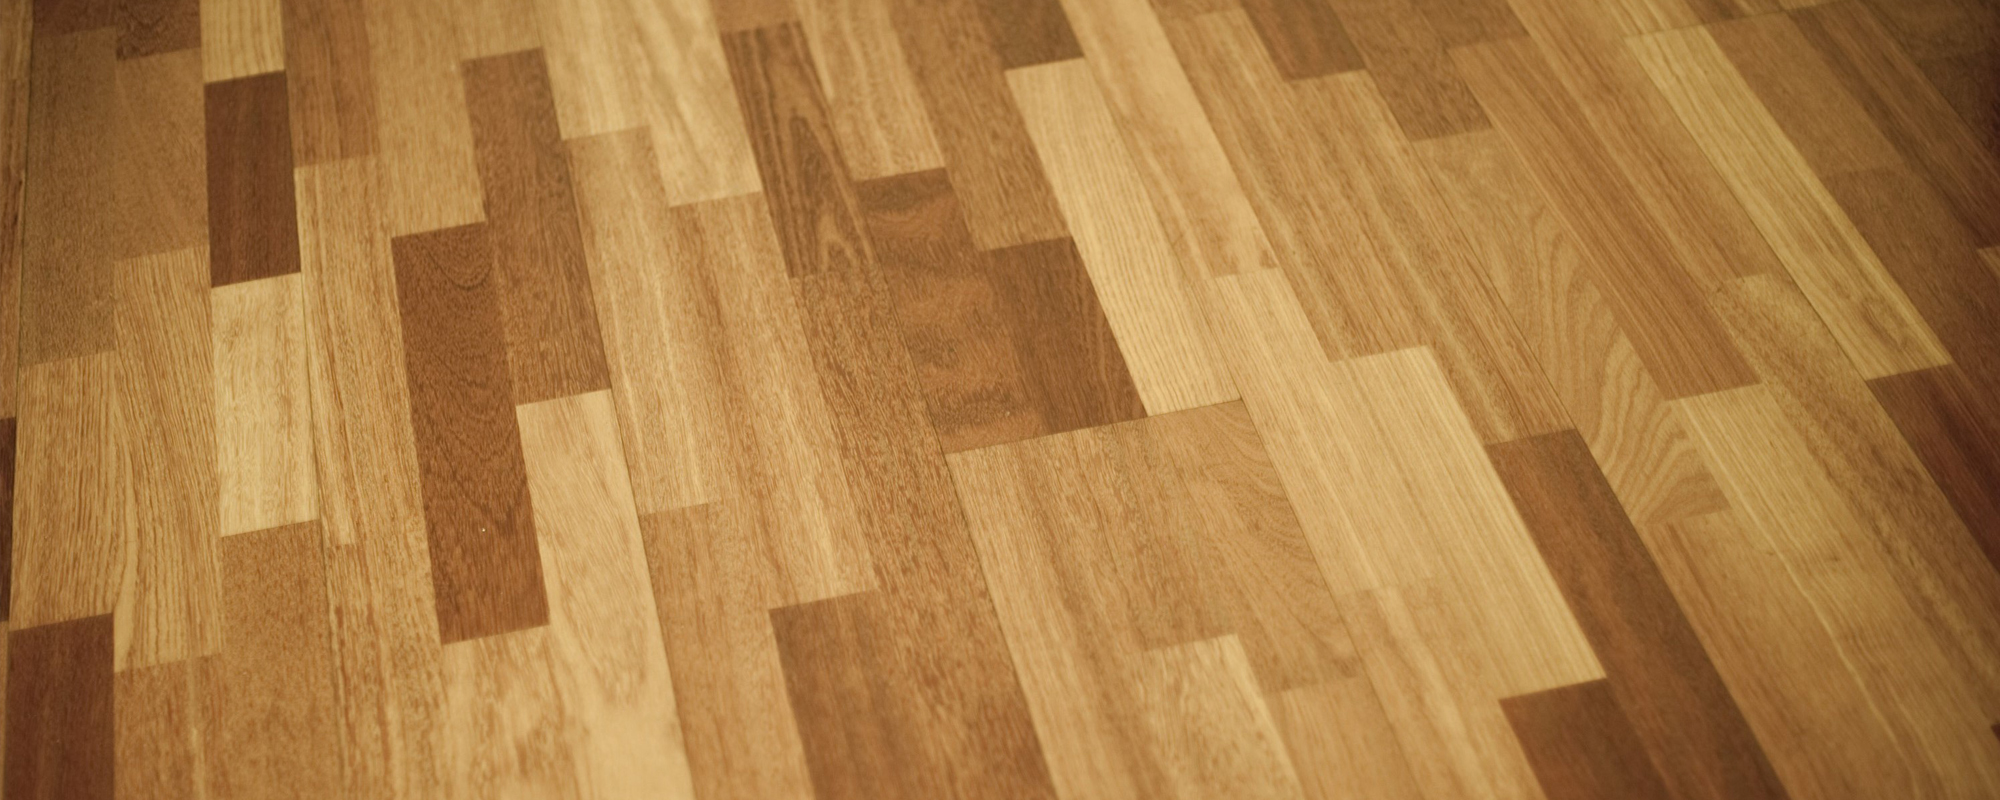 Hardwood floor cleaning tips from Xtraclean